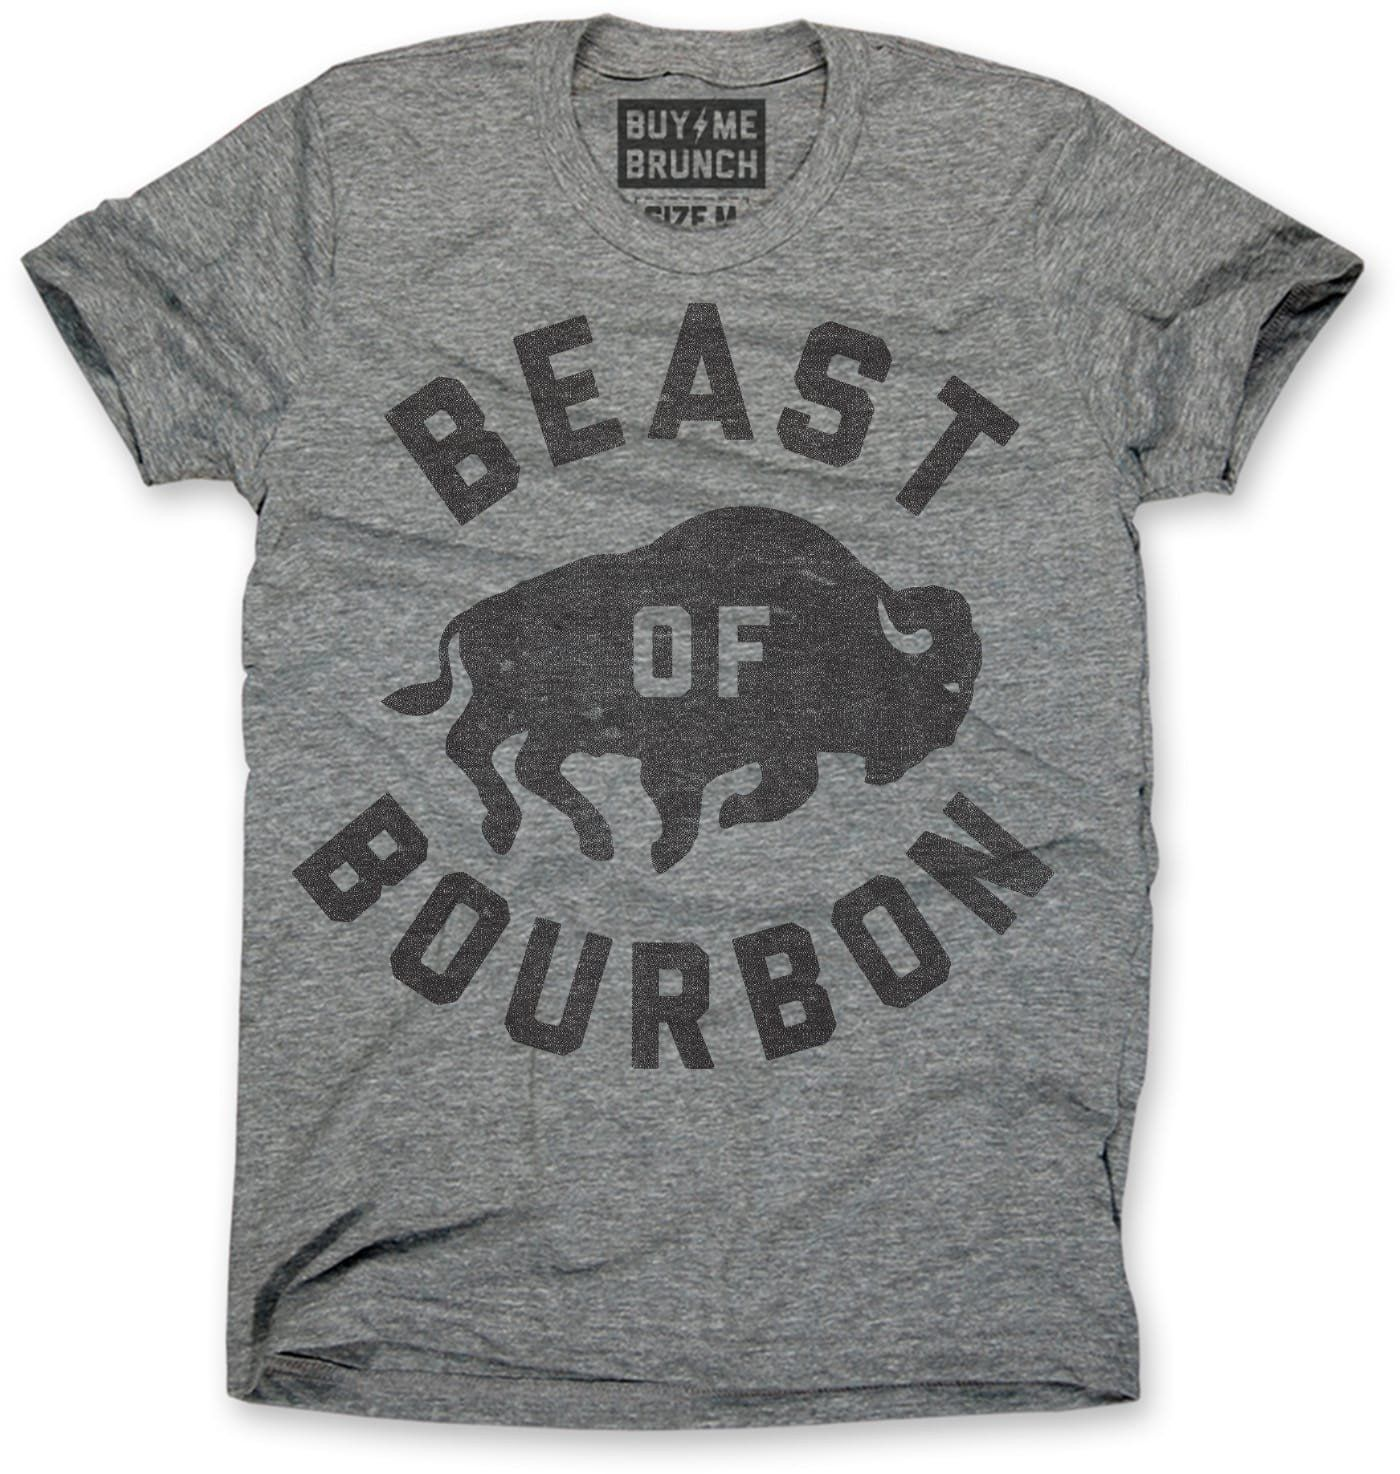 3c5c7b40 This Beast of Bourbon shirt by Buy Me Brunch is available as a men's t-shirt  or women's tank top.